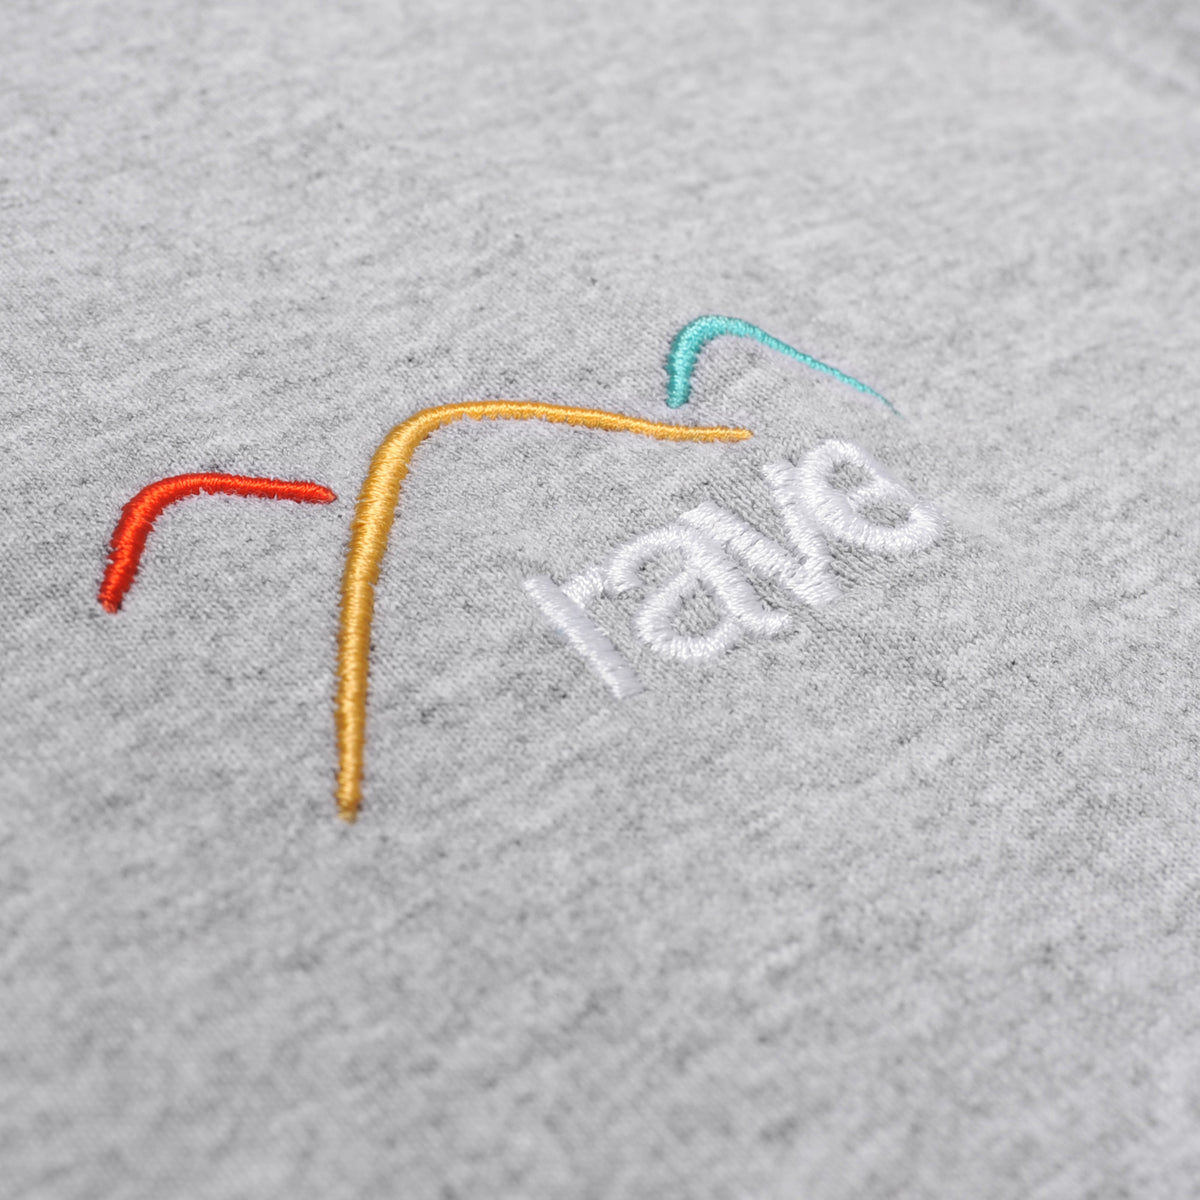 SUMMIT grey tee - RAVE skateboards